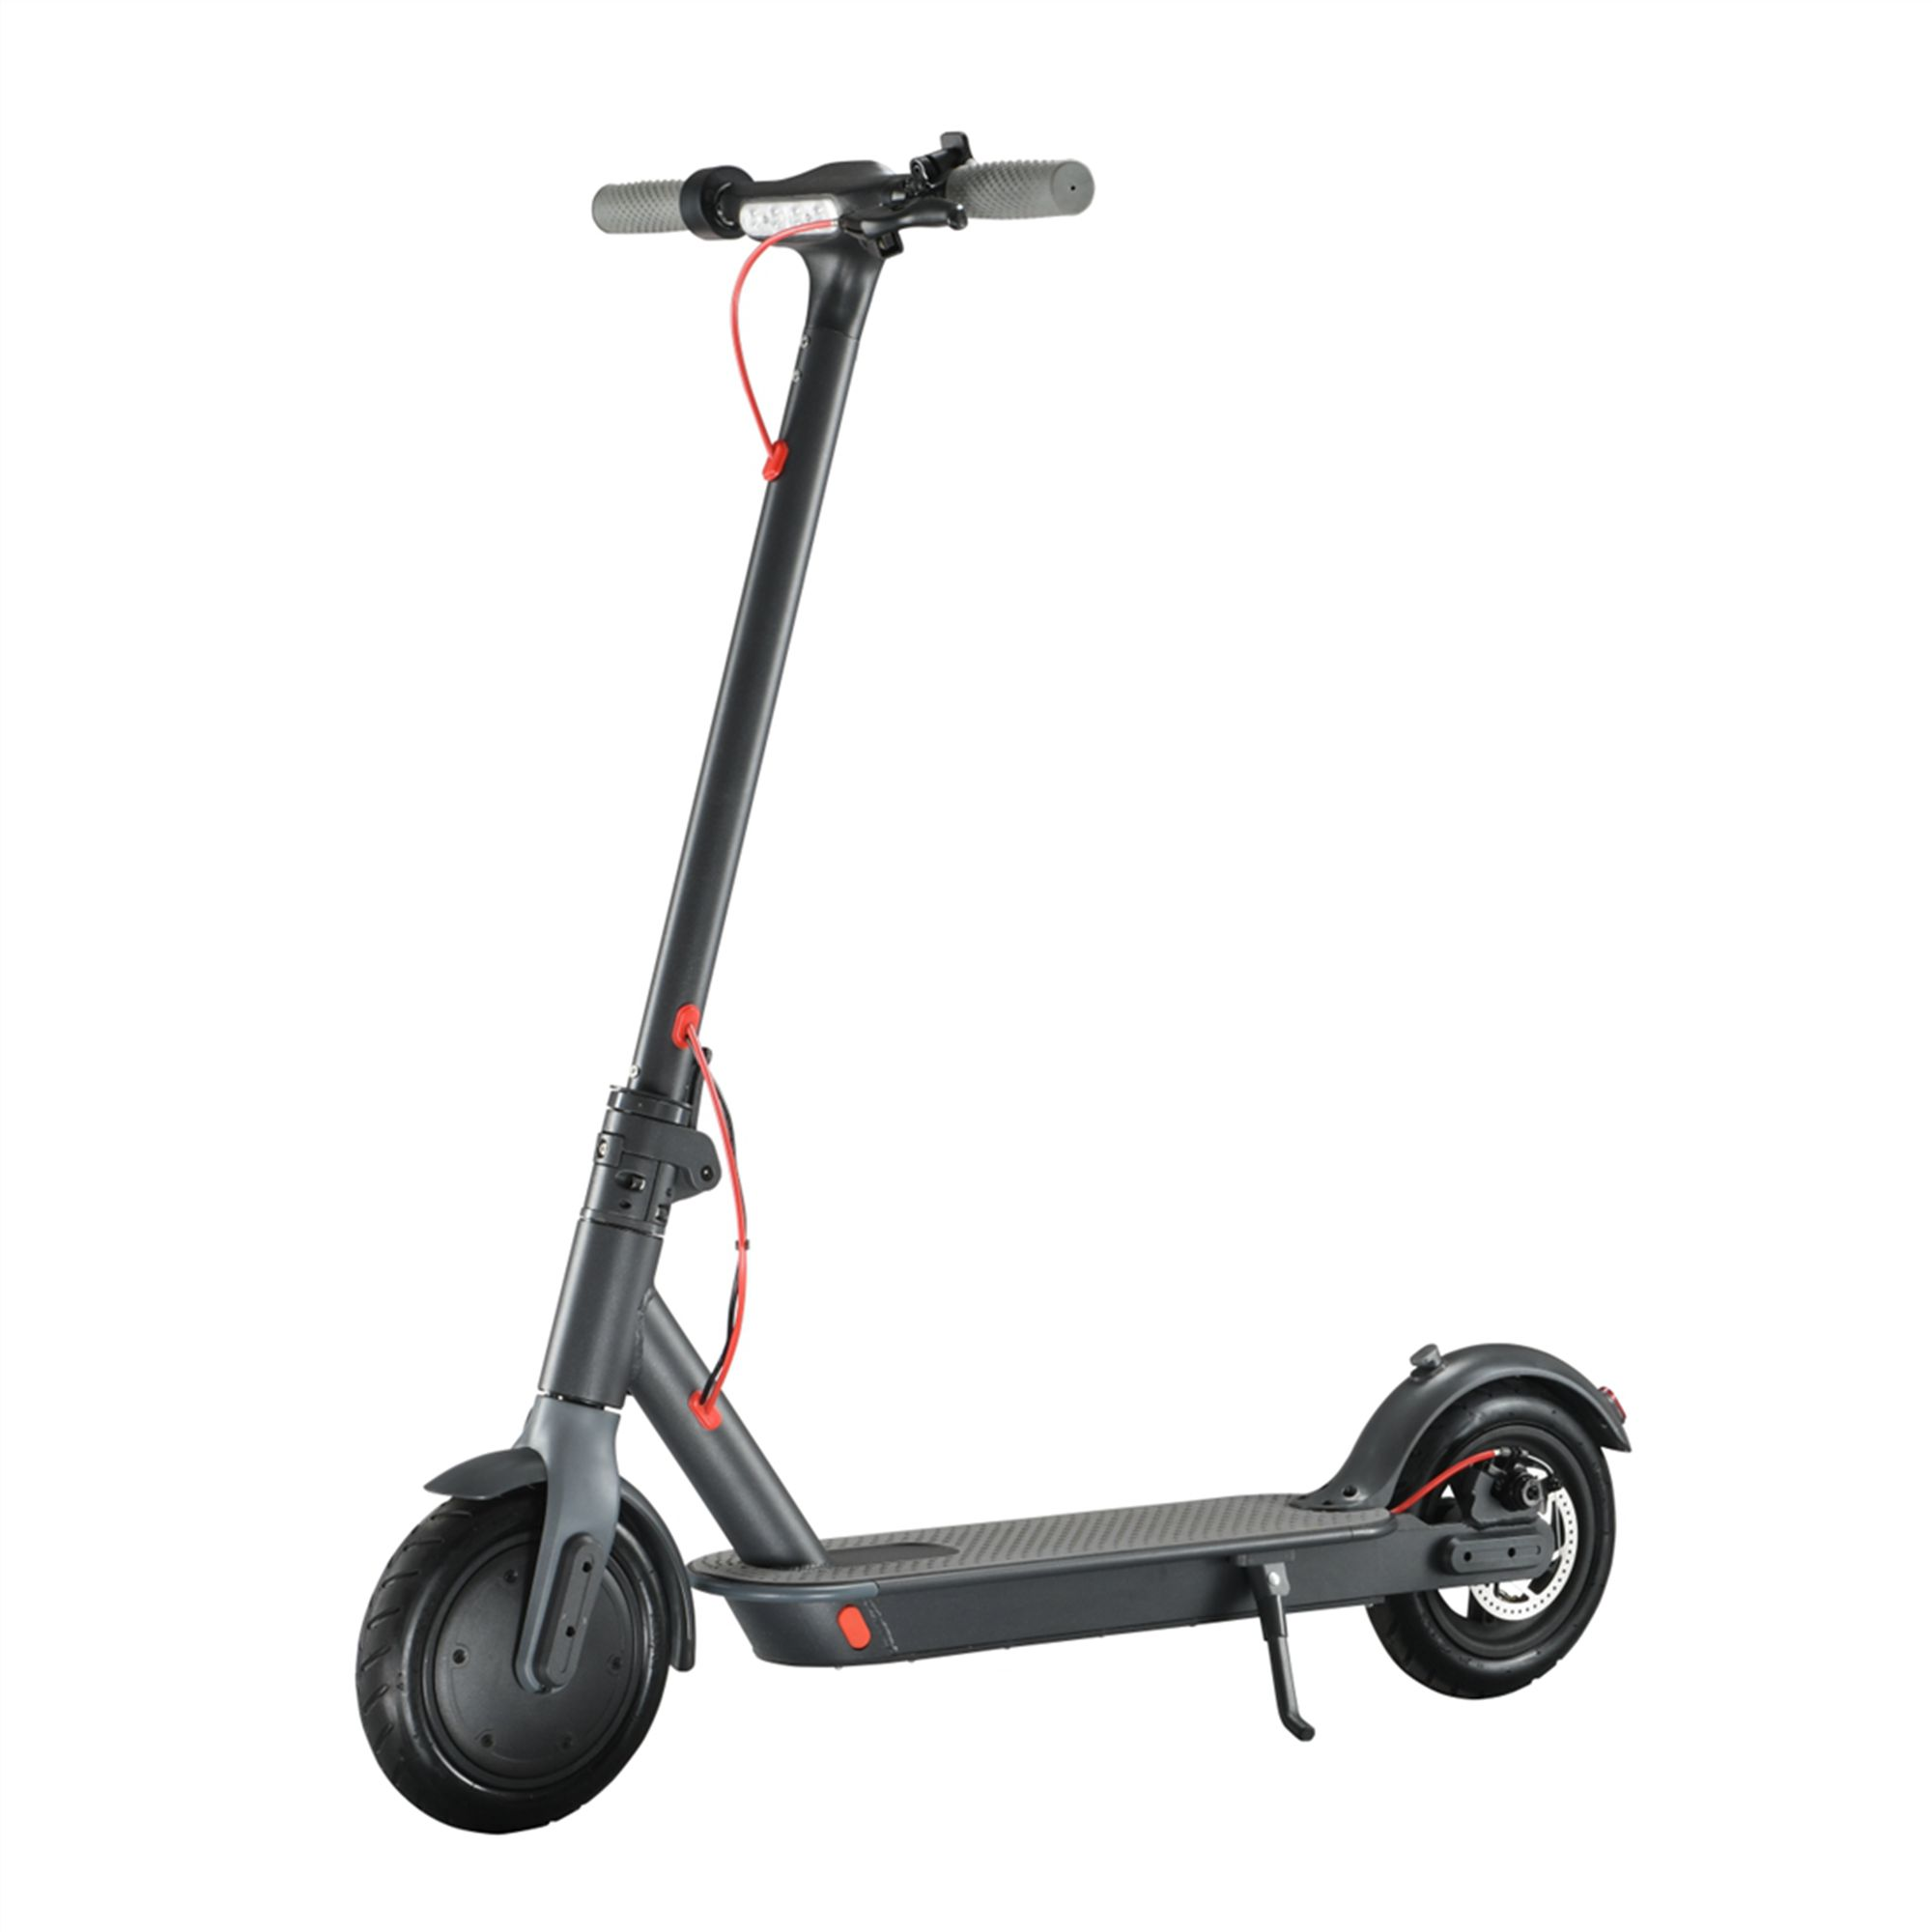 CF-D8.5-1B 36V 250-350W city foldable electric scooter